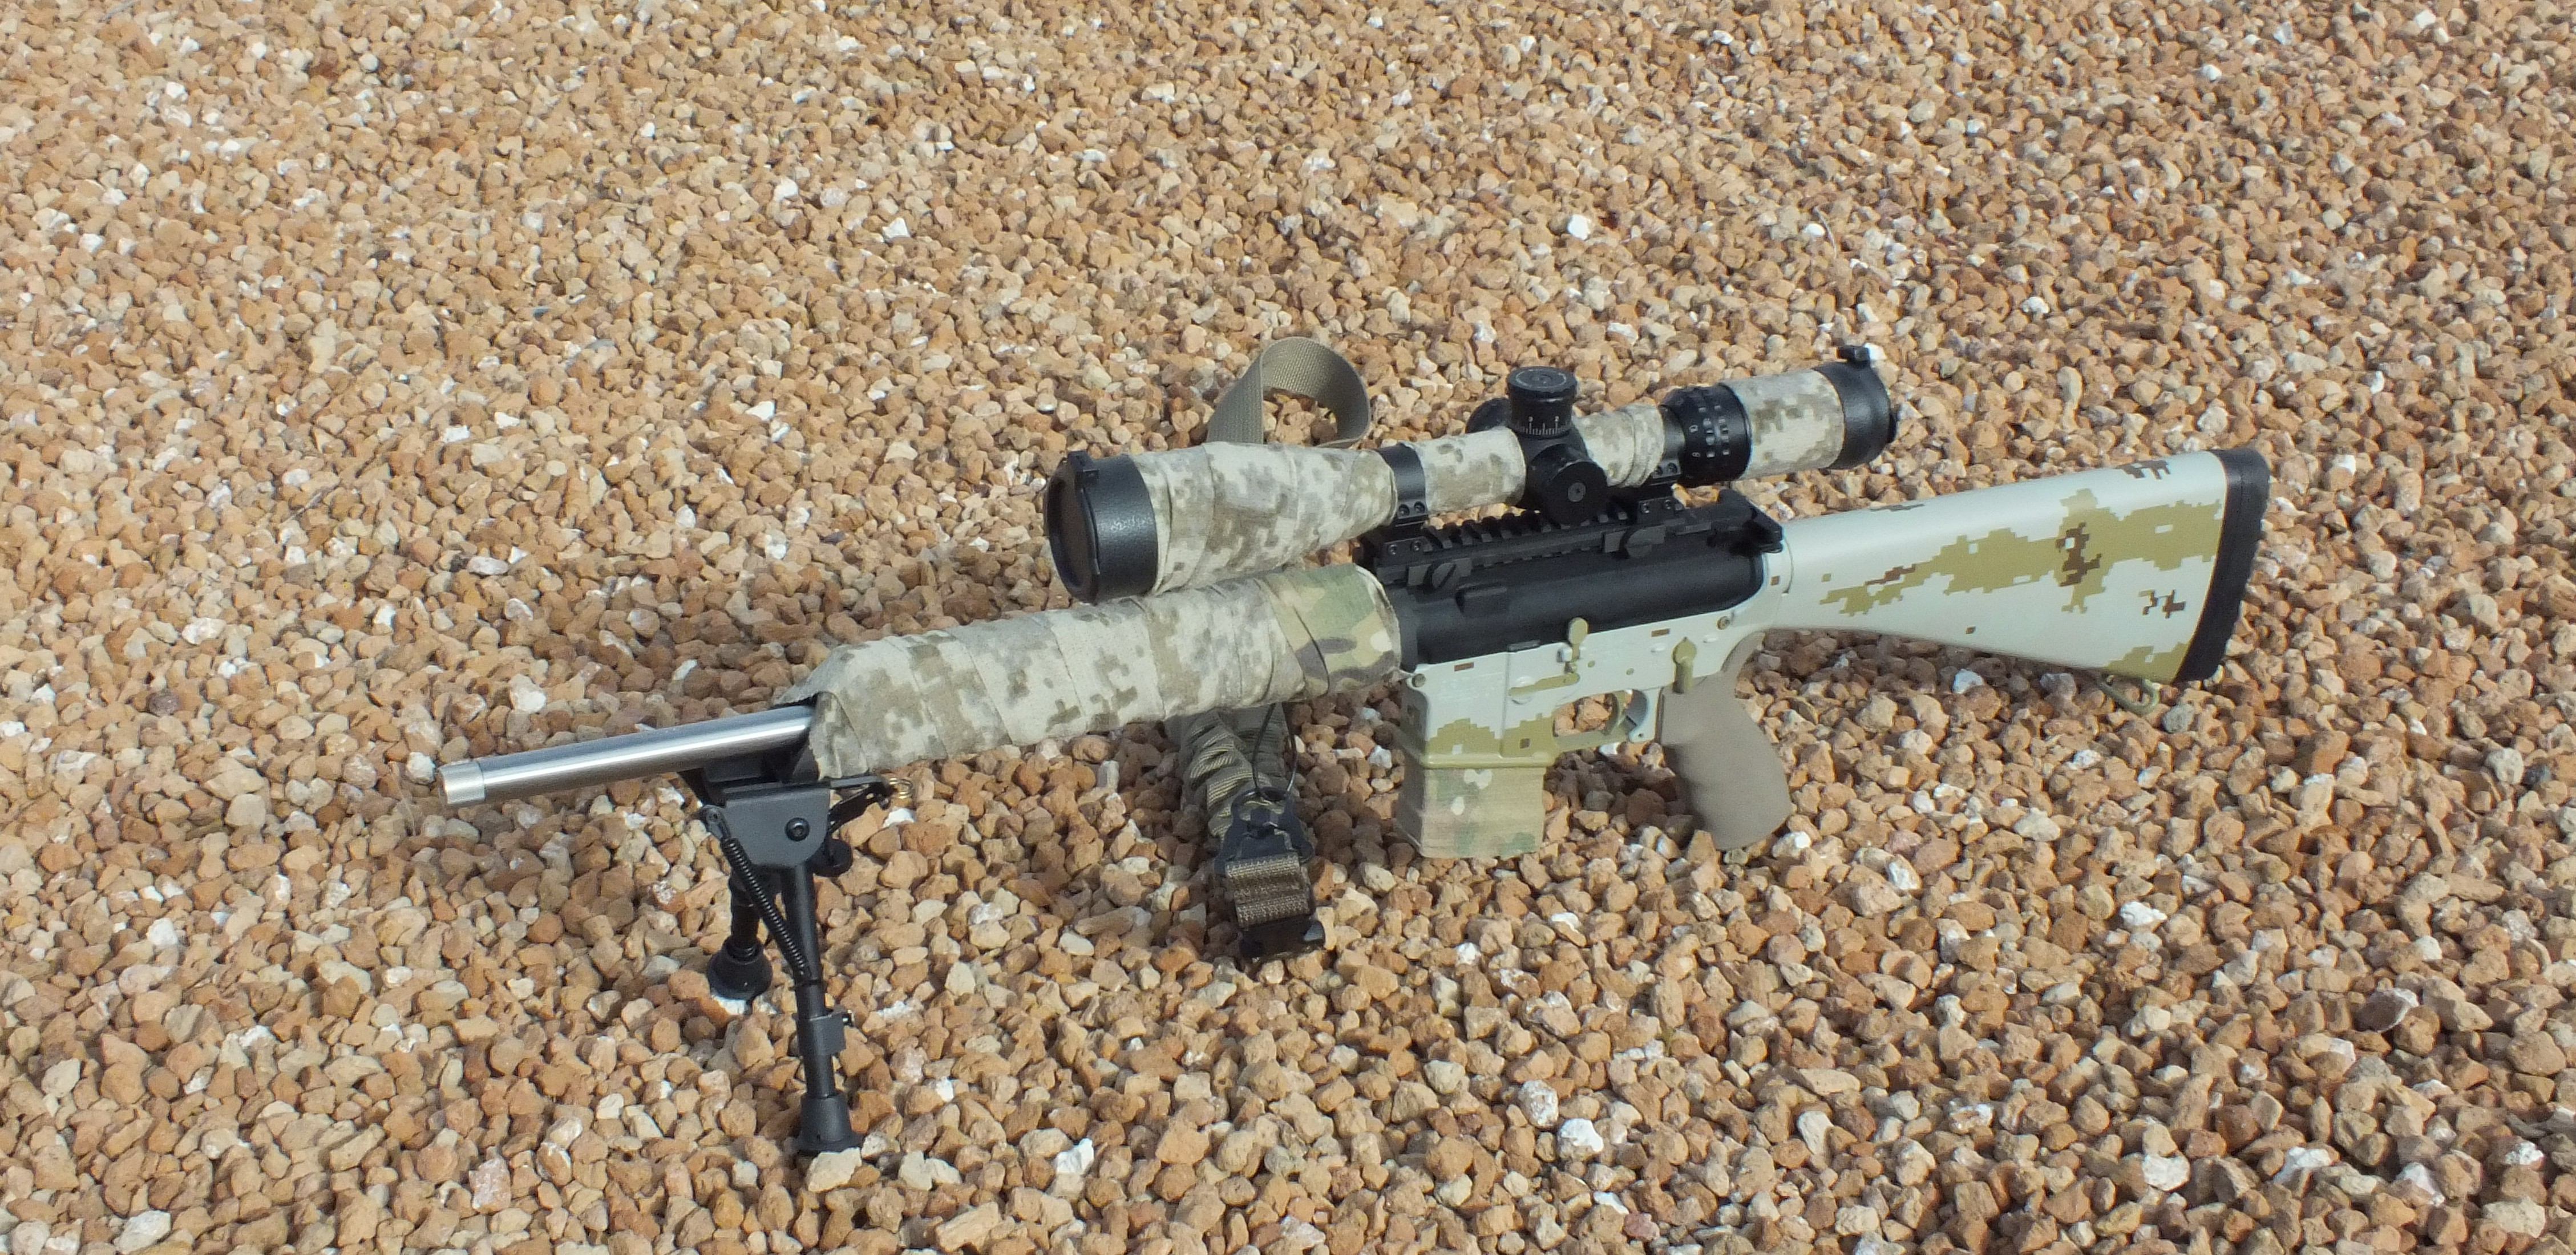 Black 25 45 with McNett Tape over forend and scope c09e564d7